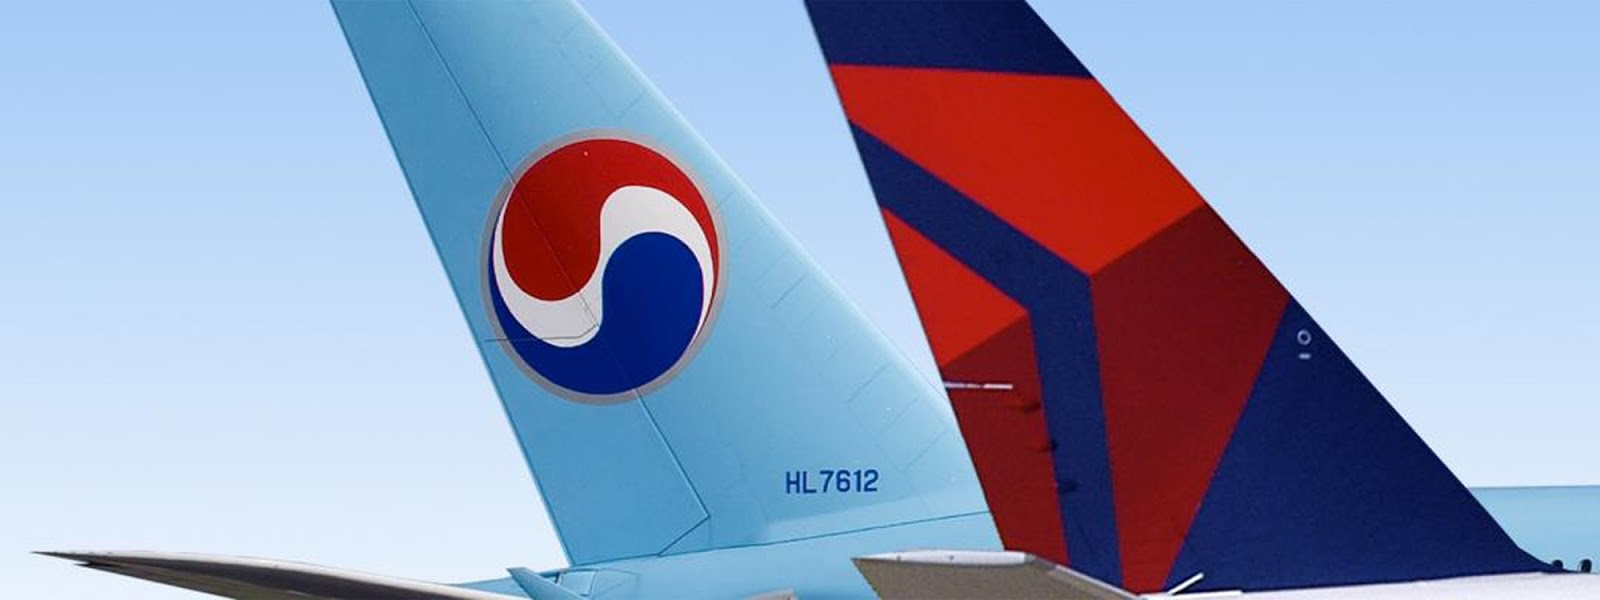 Delta and korean airlines to form joint venture spreading deltas delta and korean airlines to form joint venture spreading deltas global dominance and influence thecheapjerseys Choice Image